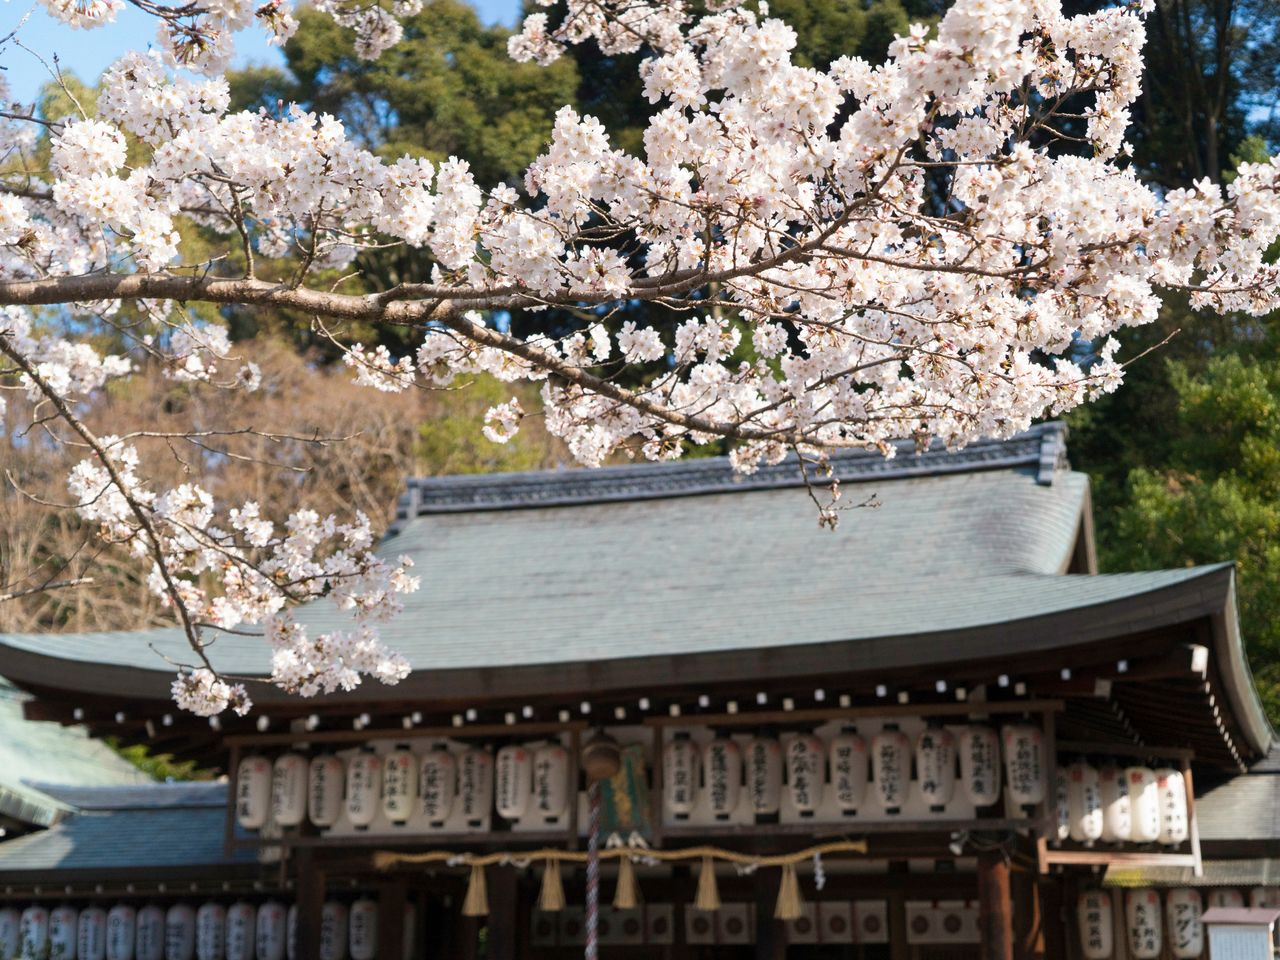 Cherries lend their color to the shrine's main hall. The Ōka Matsuri held here every year on the first Sunday of April is a celebration of the blossoms.